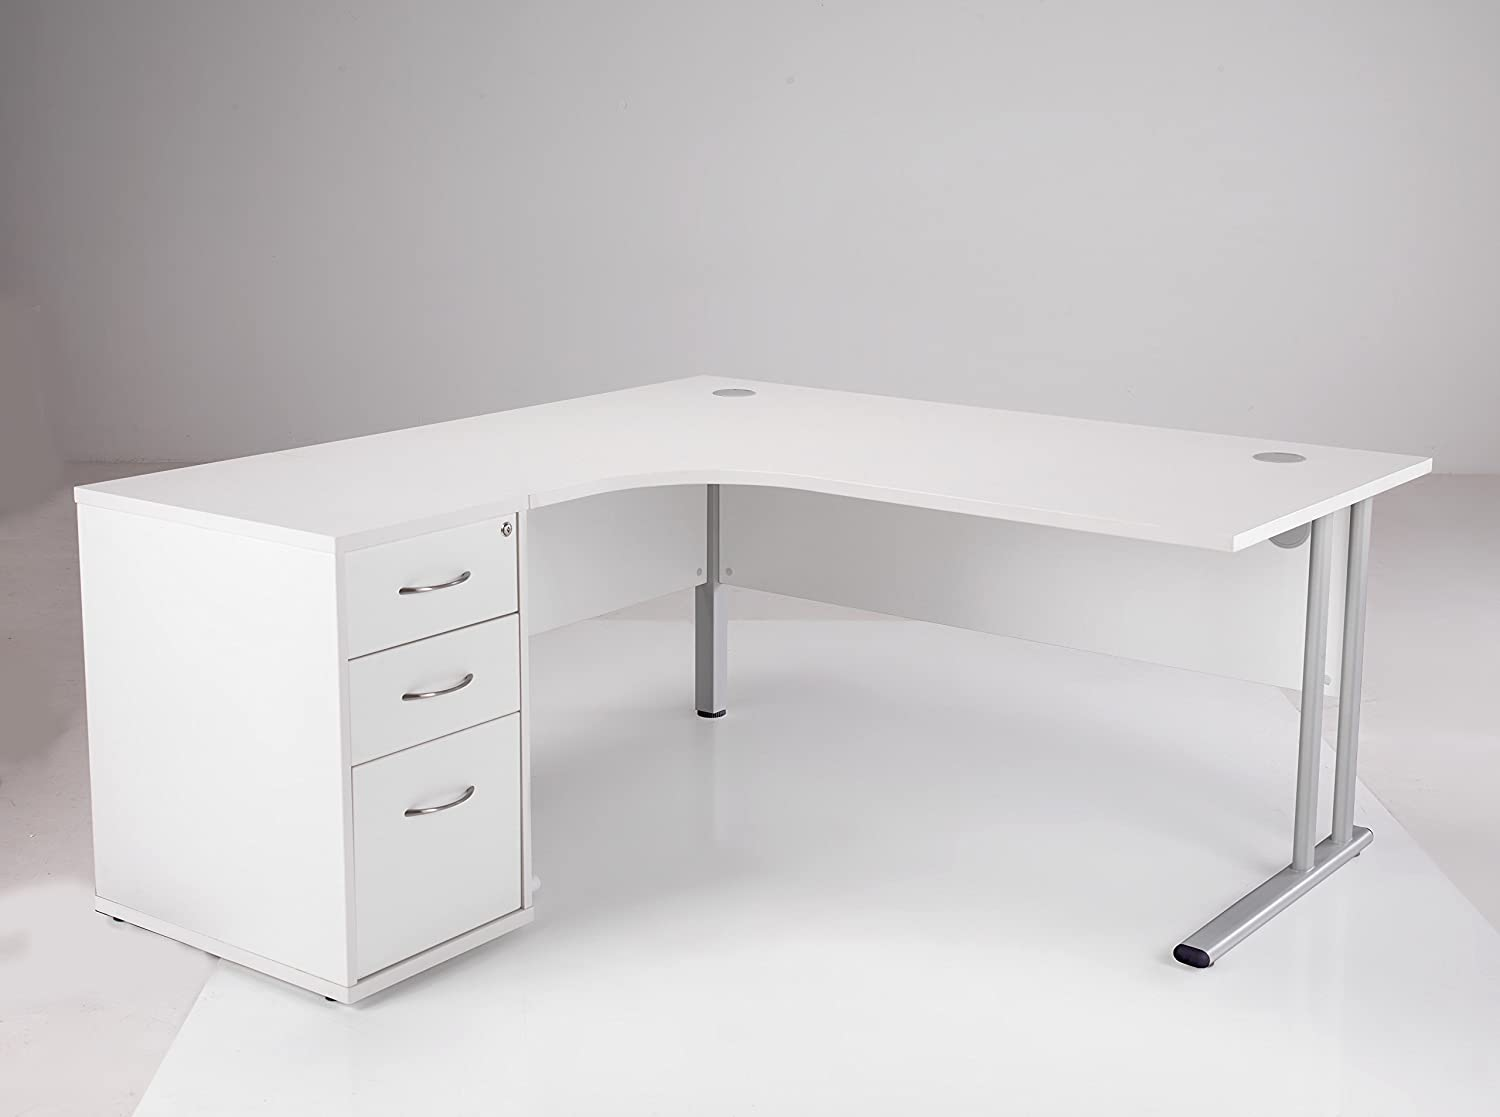 corner office furniture. BiMi 1600mm Ergonomic Left Hand Corner Desk With 3 Draw High Pedestal: Amazon.co.uk: Kitchen \u0026 Home Office Furniture